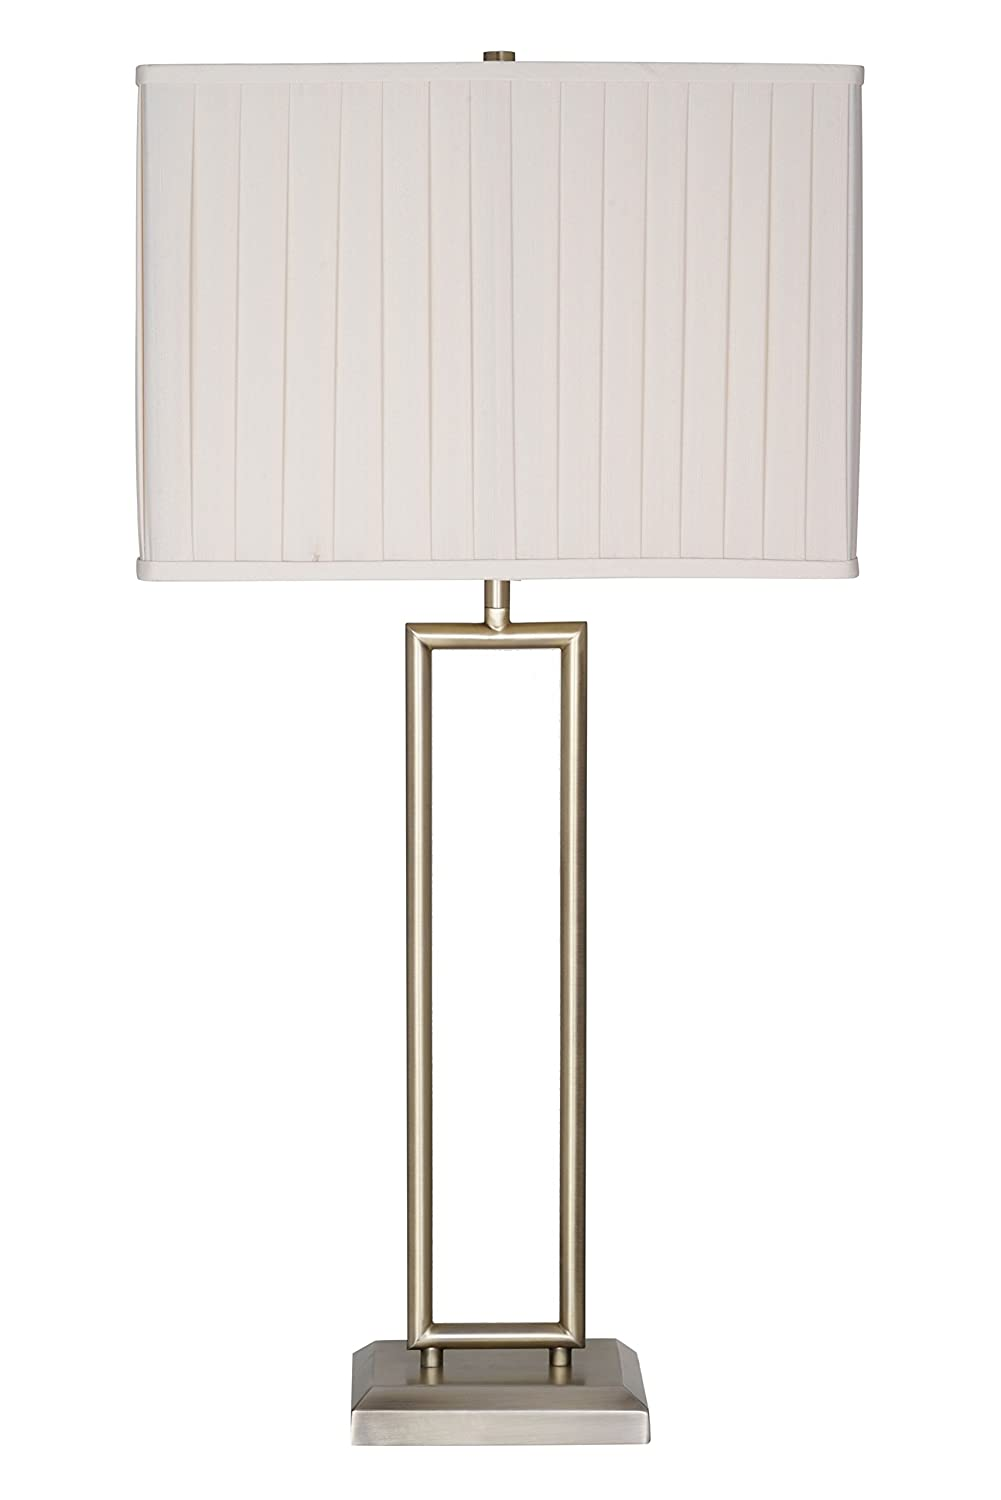 "CDM product Catalina Lighting 20710-000 Leilani 32"" Brushed Nickel & Metal Wire Gourd-Shaped Table Lamp big image"